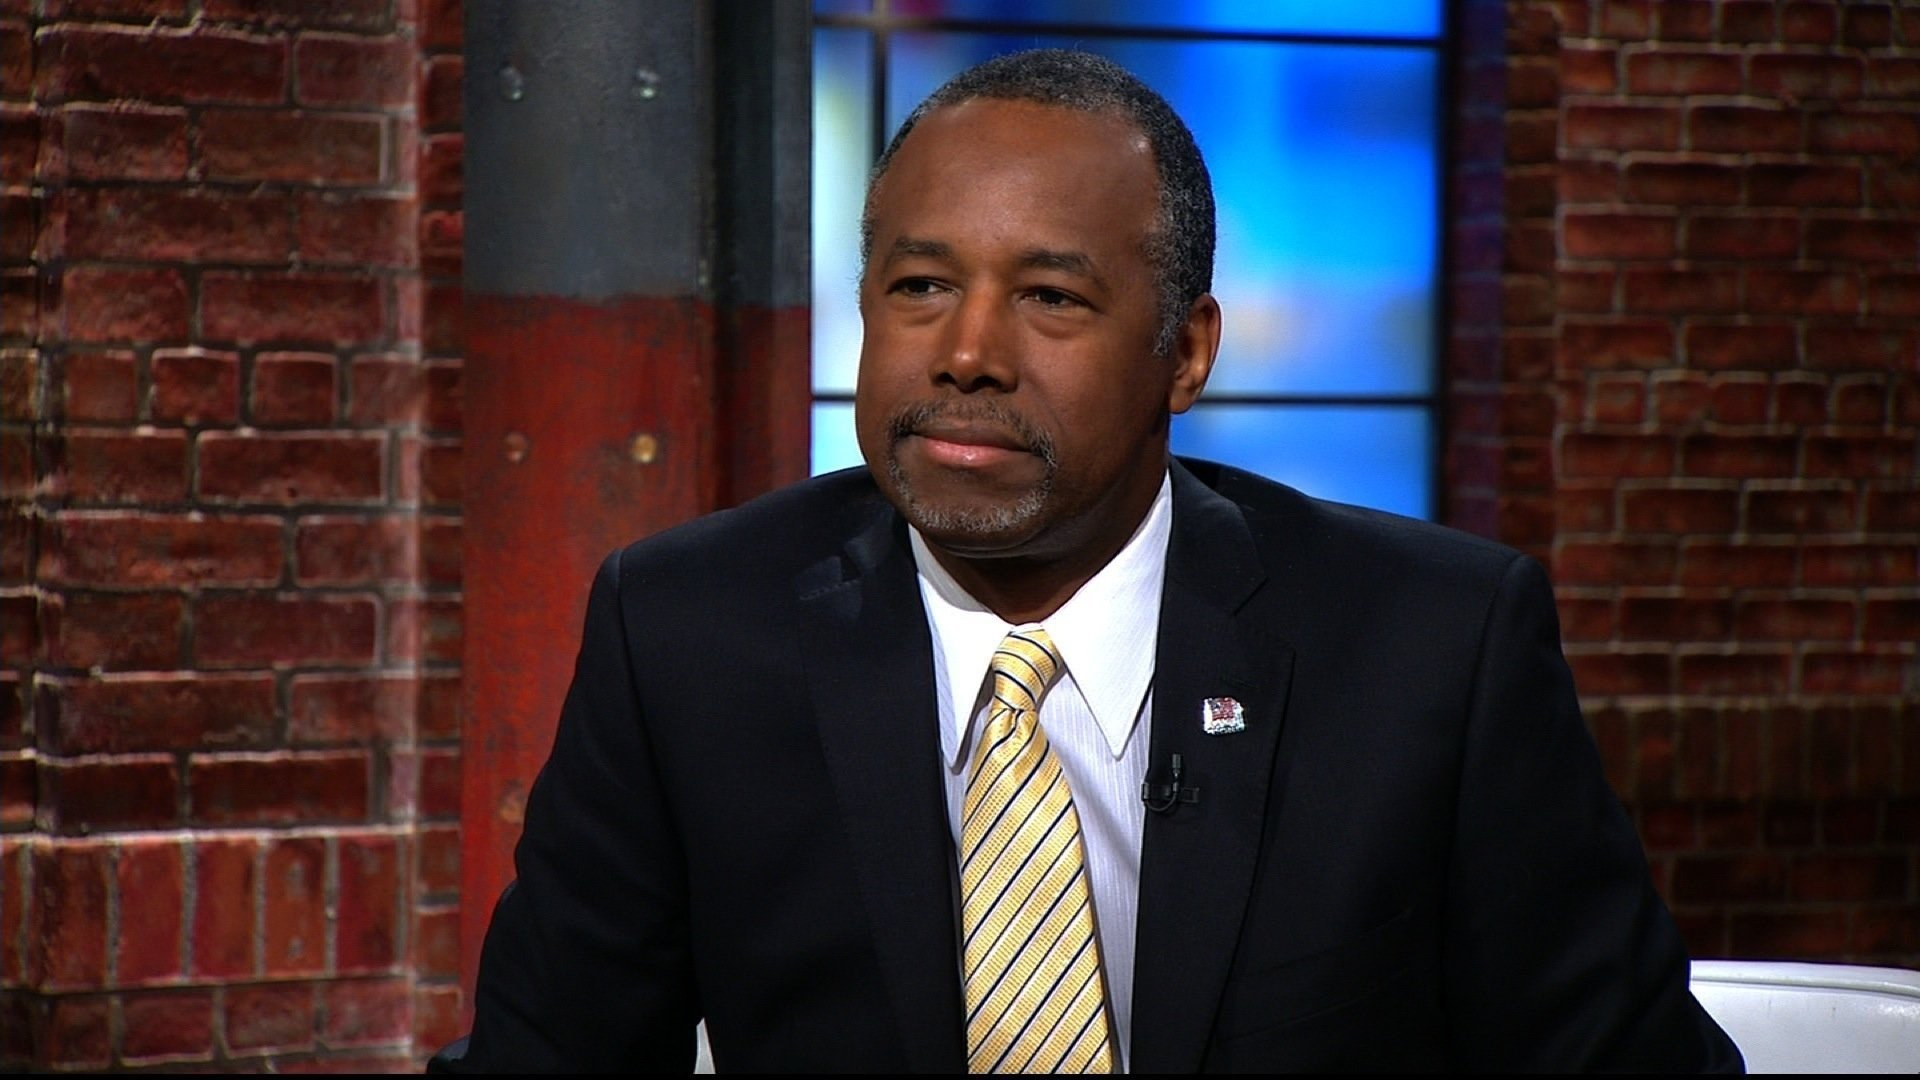 Ben Carson Doesn't Want Federally Funded Housing To Get Too 'Comfortable'